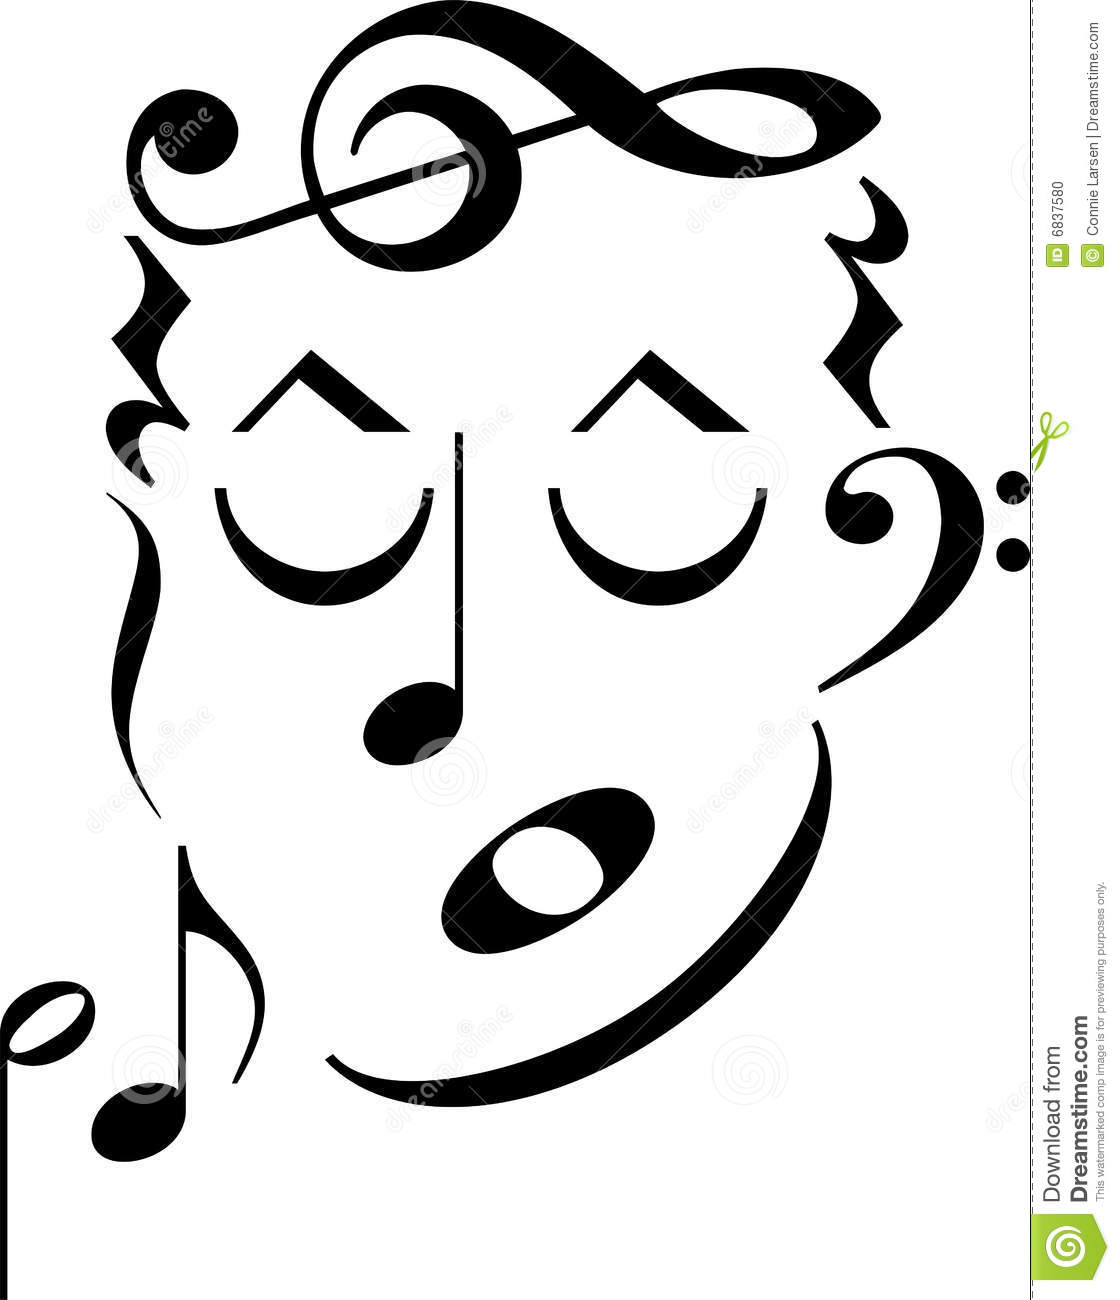 Music symbol face clipart panda free clipart images clipart info biocorpaavc